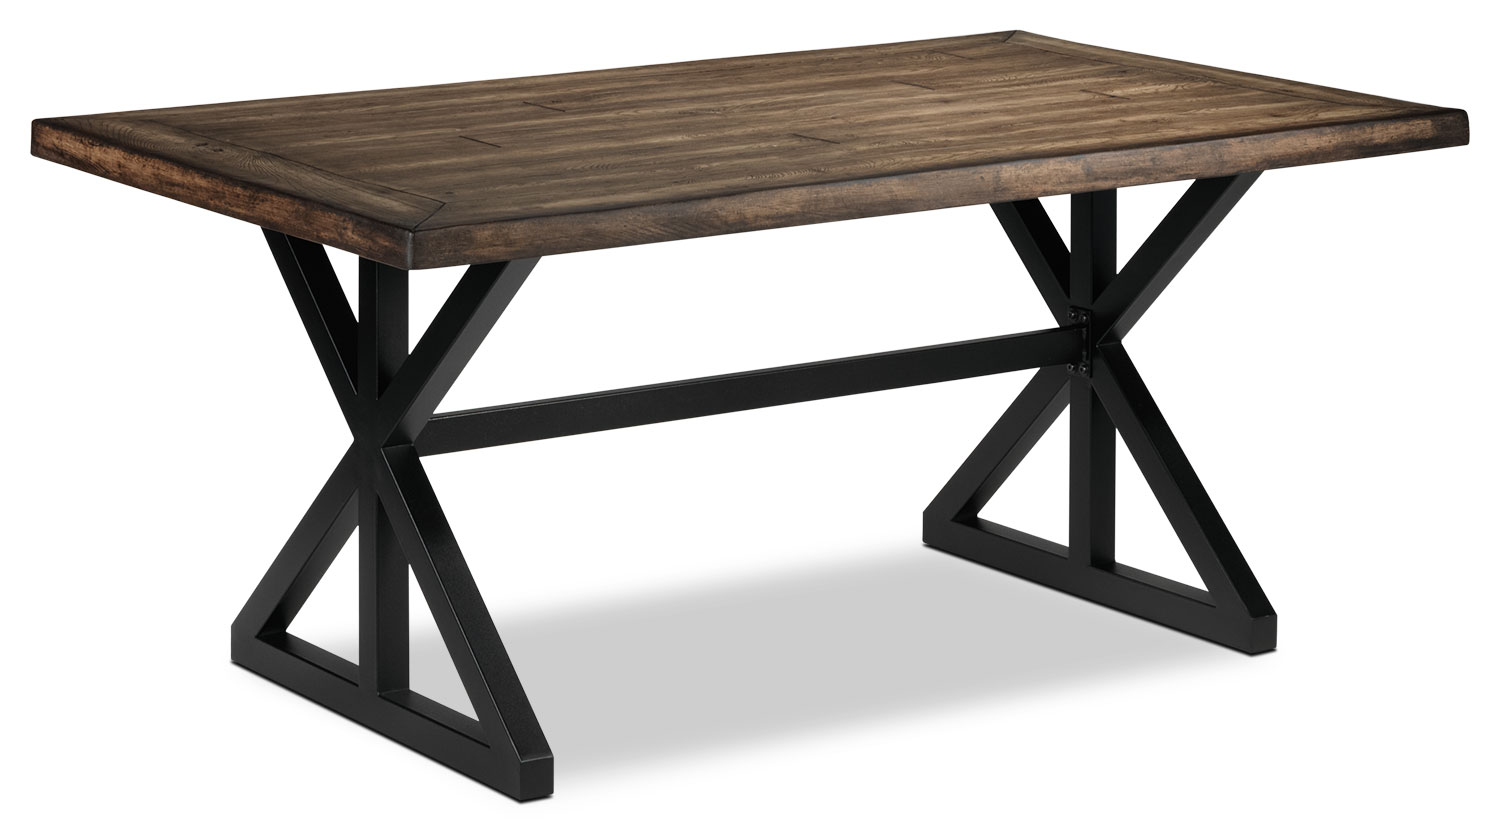 Casual Dining Room Furniture - Mabel Dining Table - Honey